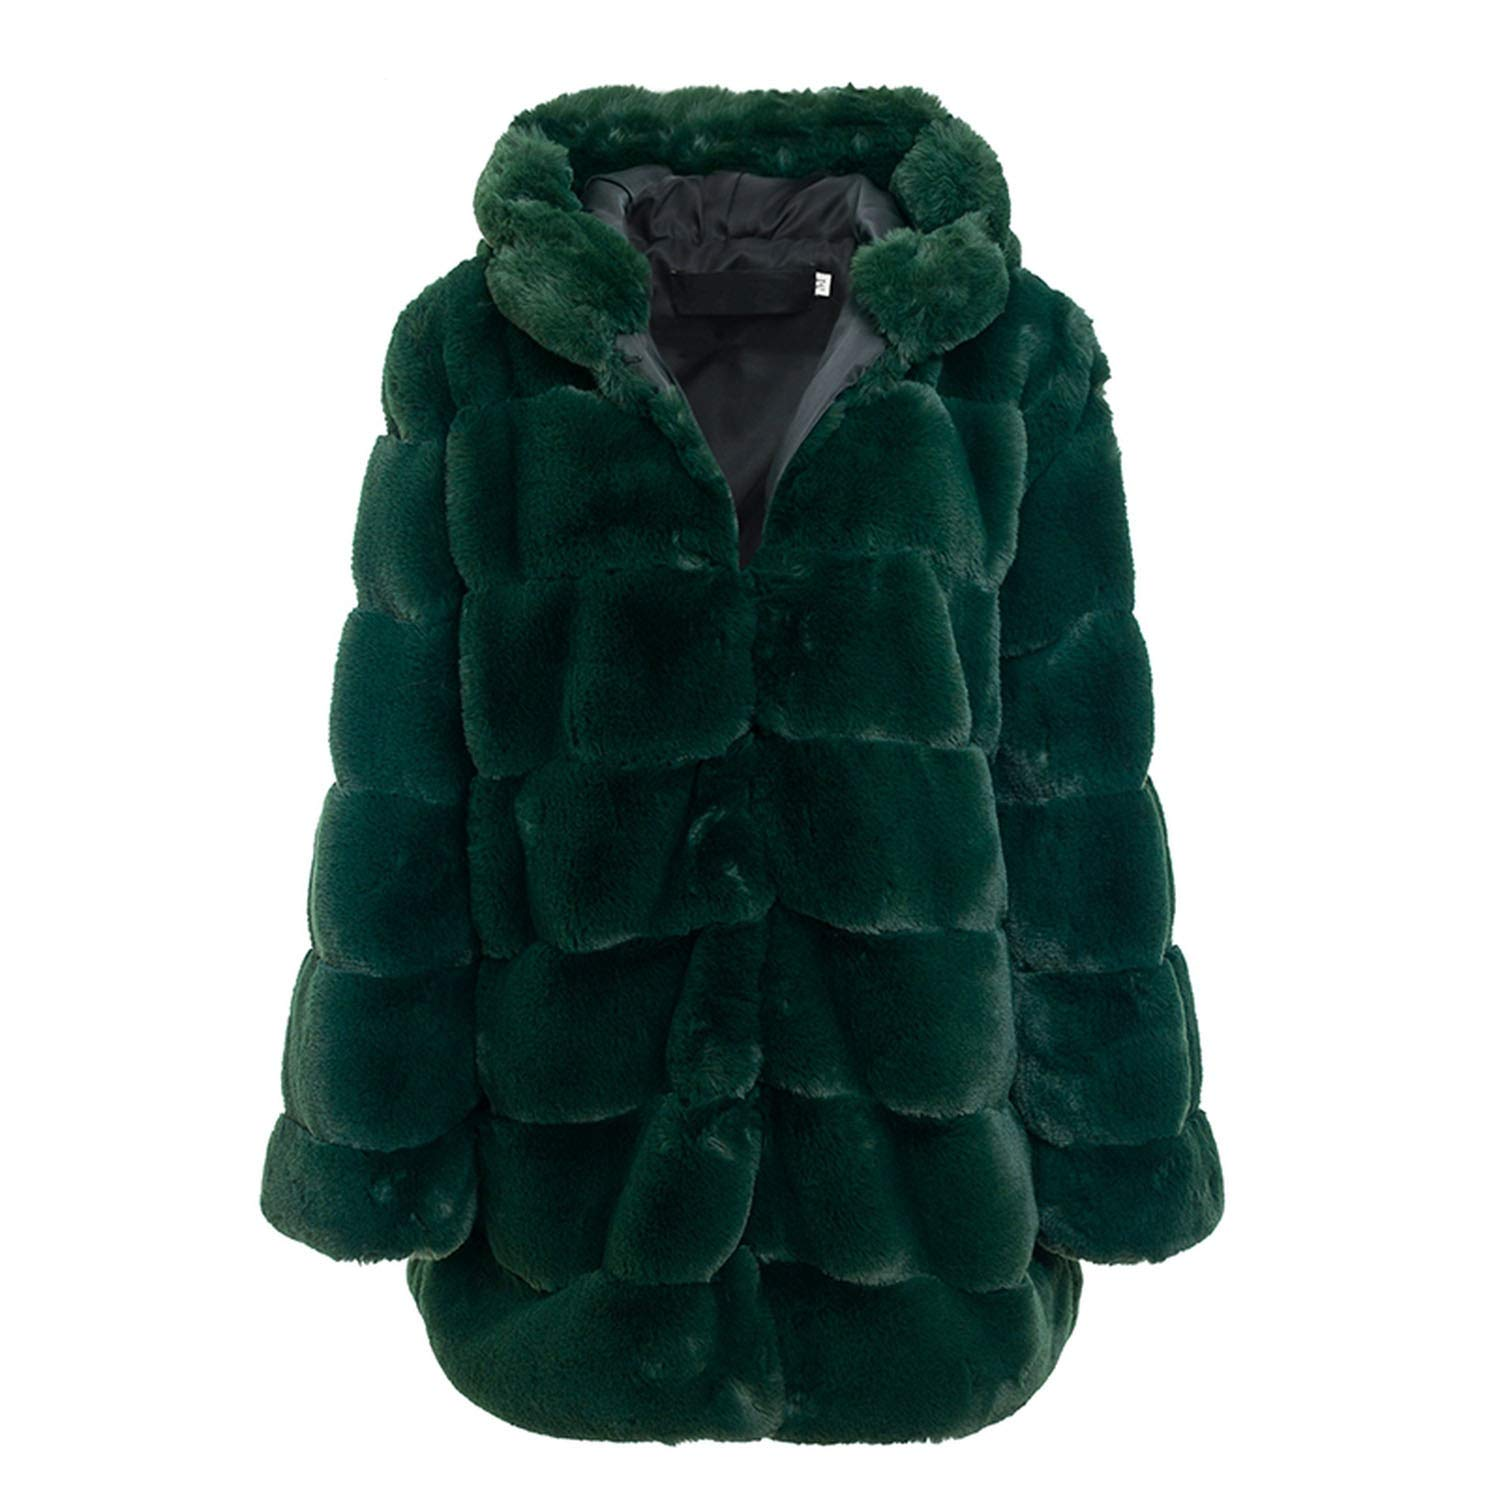 Dark Green For What Reason Vintage Fluffy Hoodie Women Winter Grey et Coat Female Plus Size Warm Long Casual Overcoat